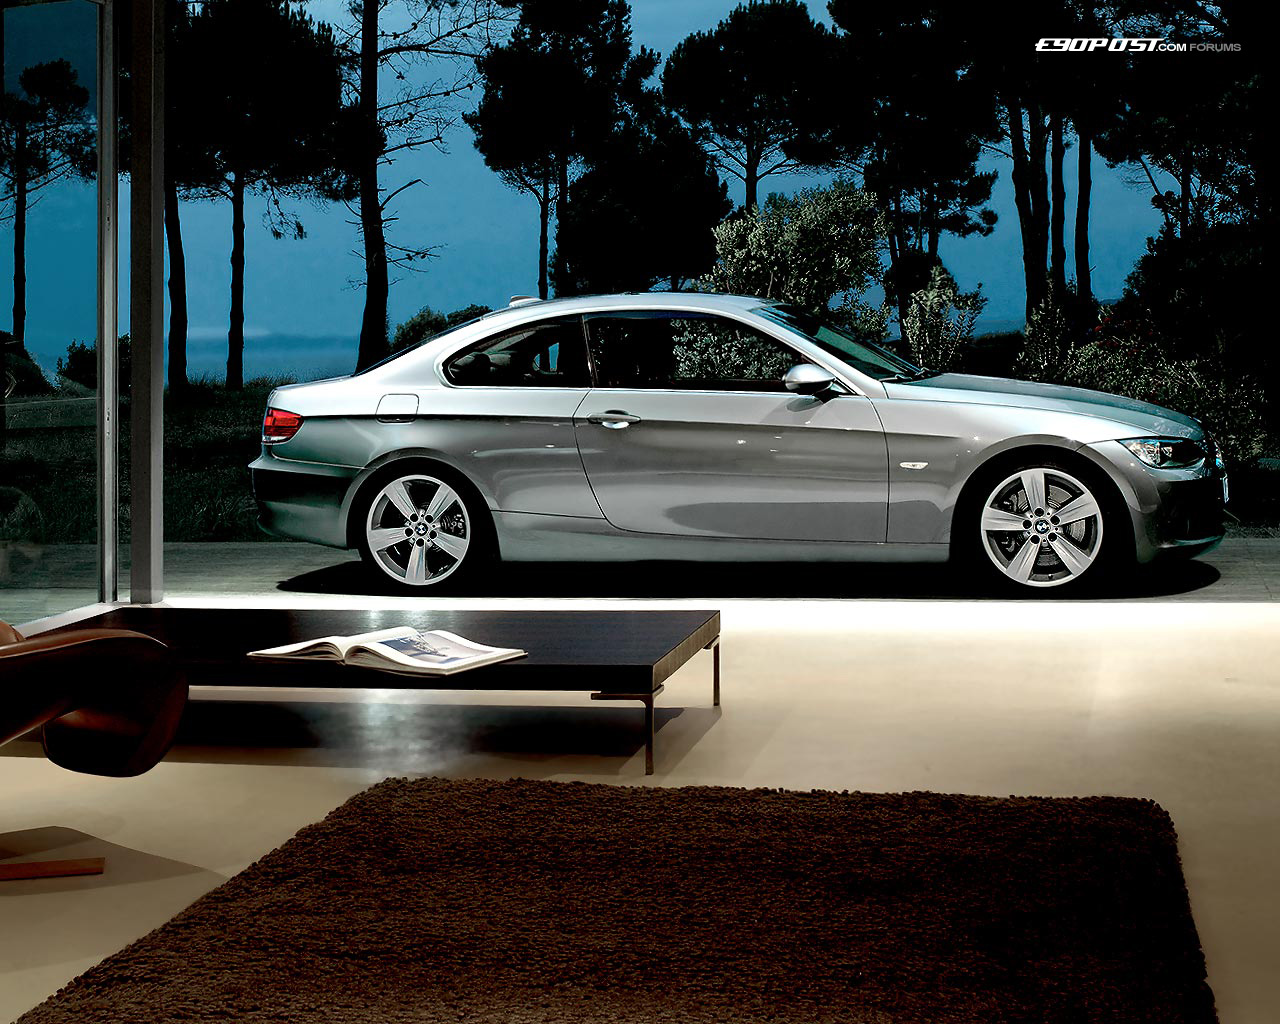 Ultimate 2007 Bmw 335i Coupe 328i Coupe Information Faq